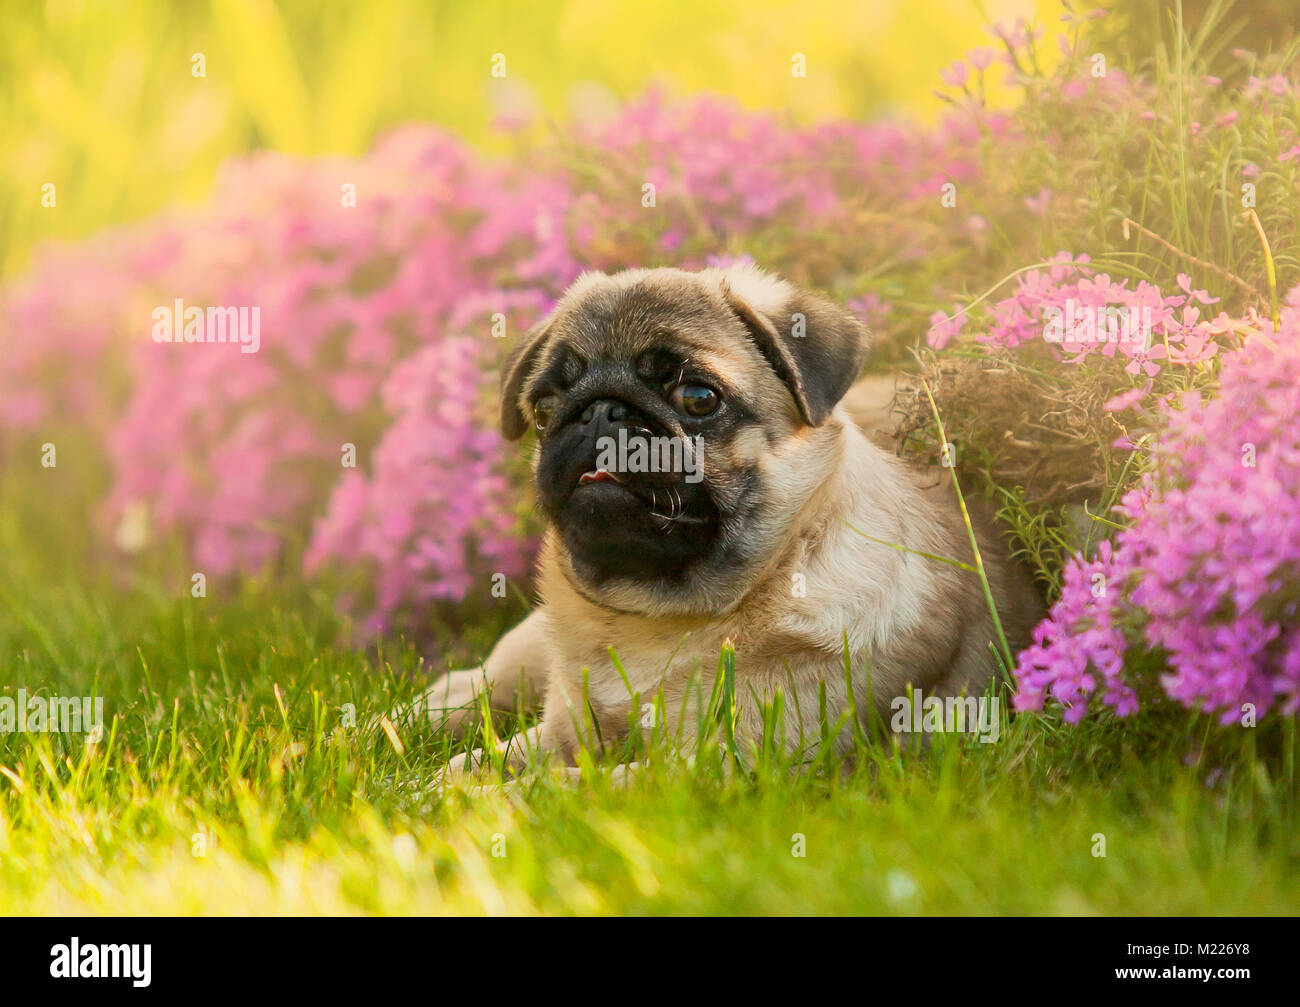 Puppy dog, the pug in the garden on the lawn, on the green grass near flowers pink - Stock Image